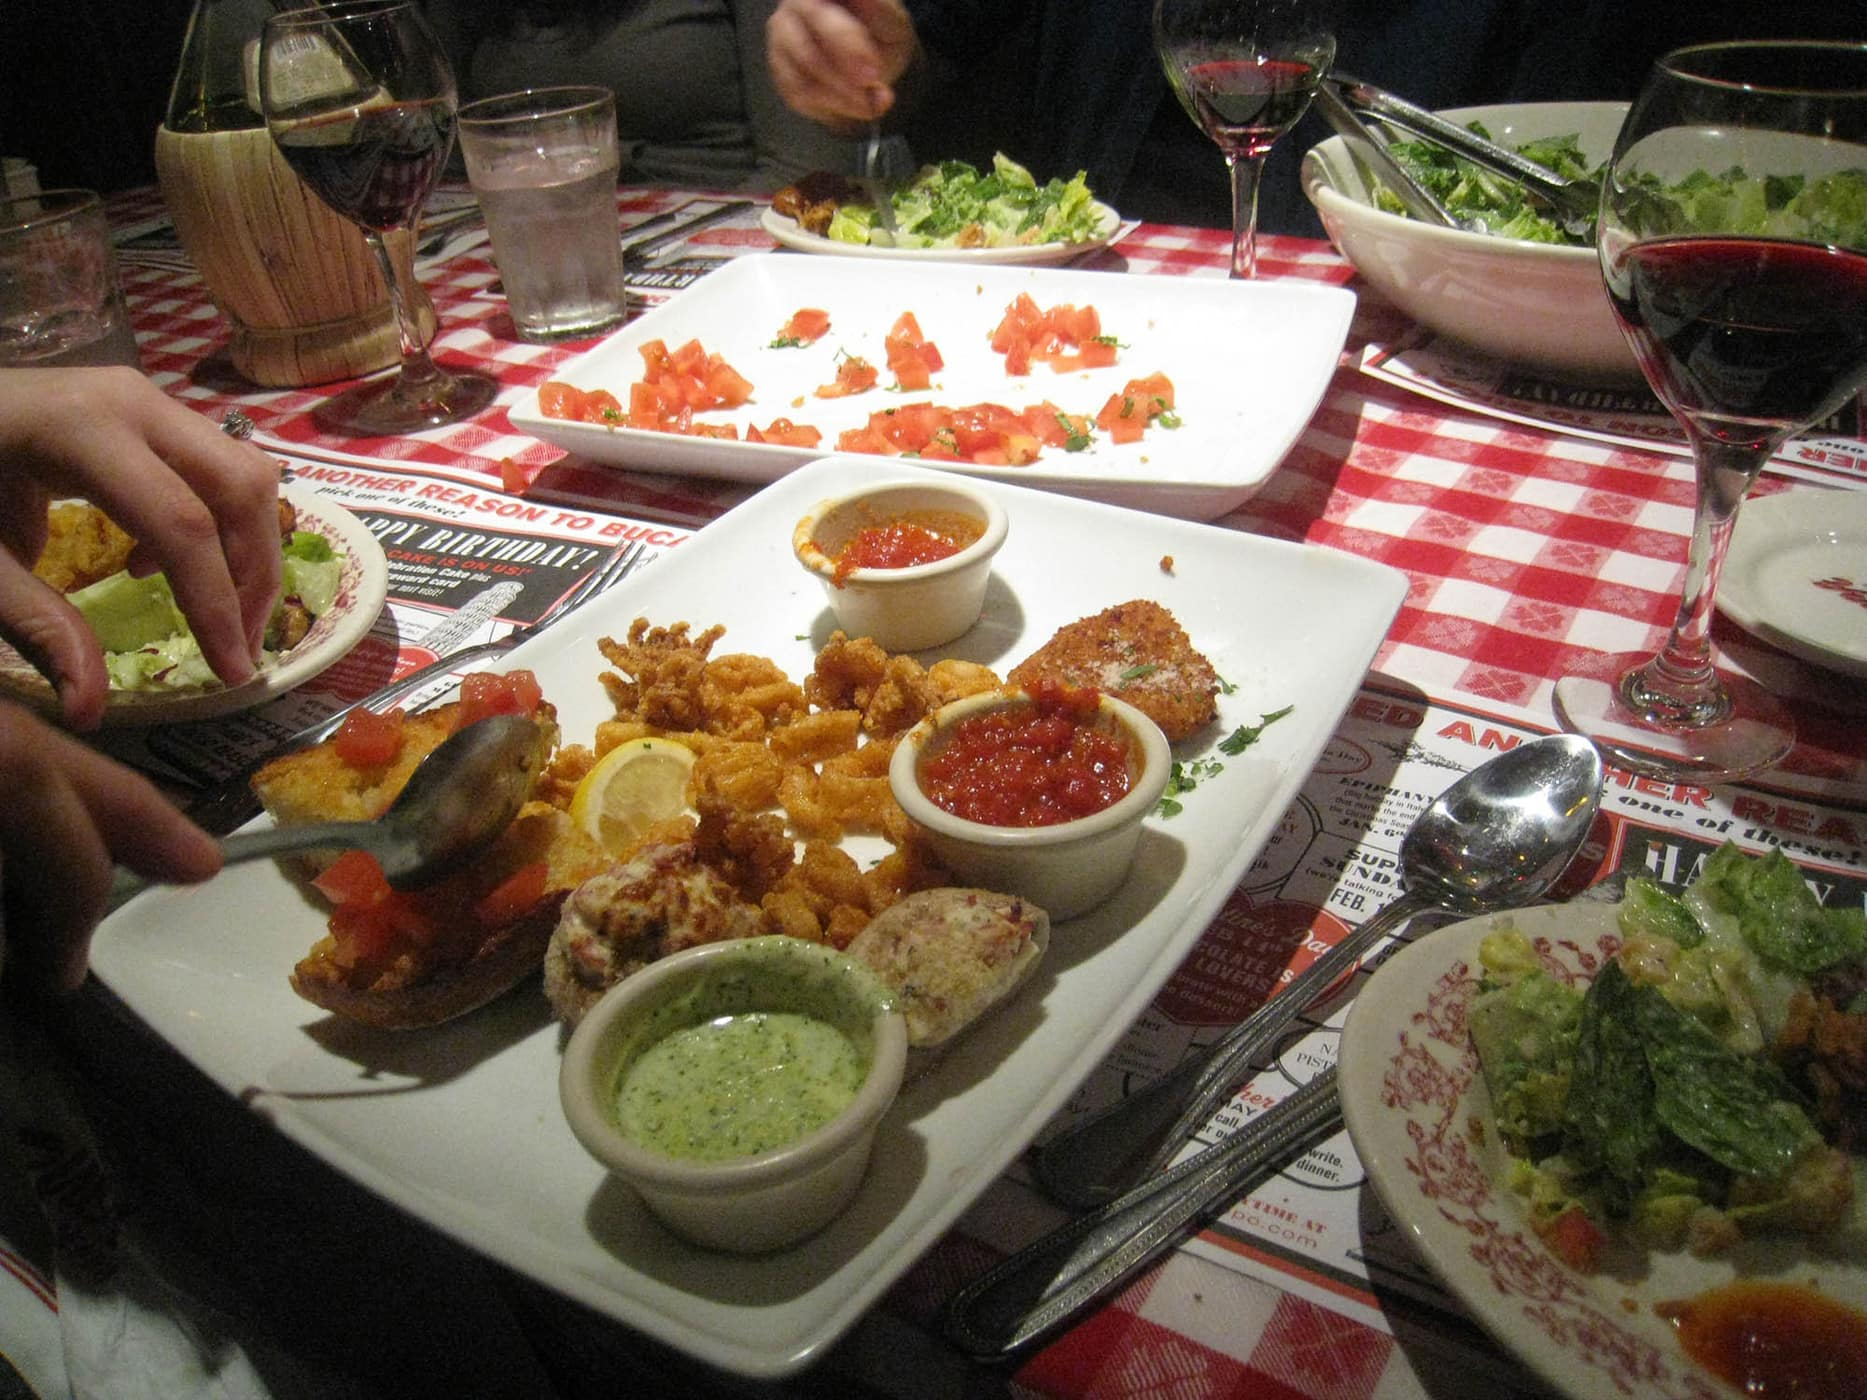 Fried Calamari and Fried Mozzarella at Bucca di Beppo